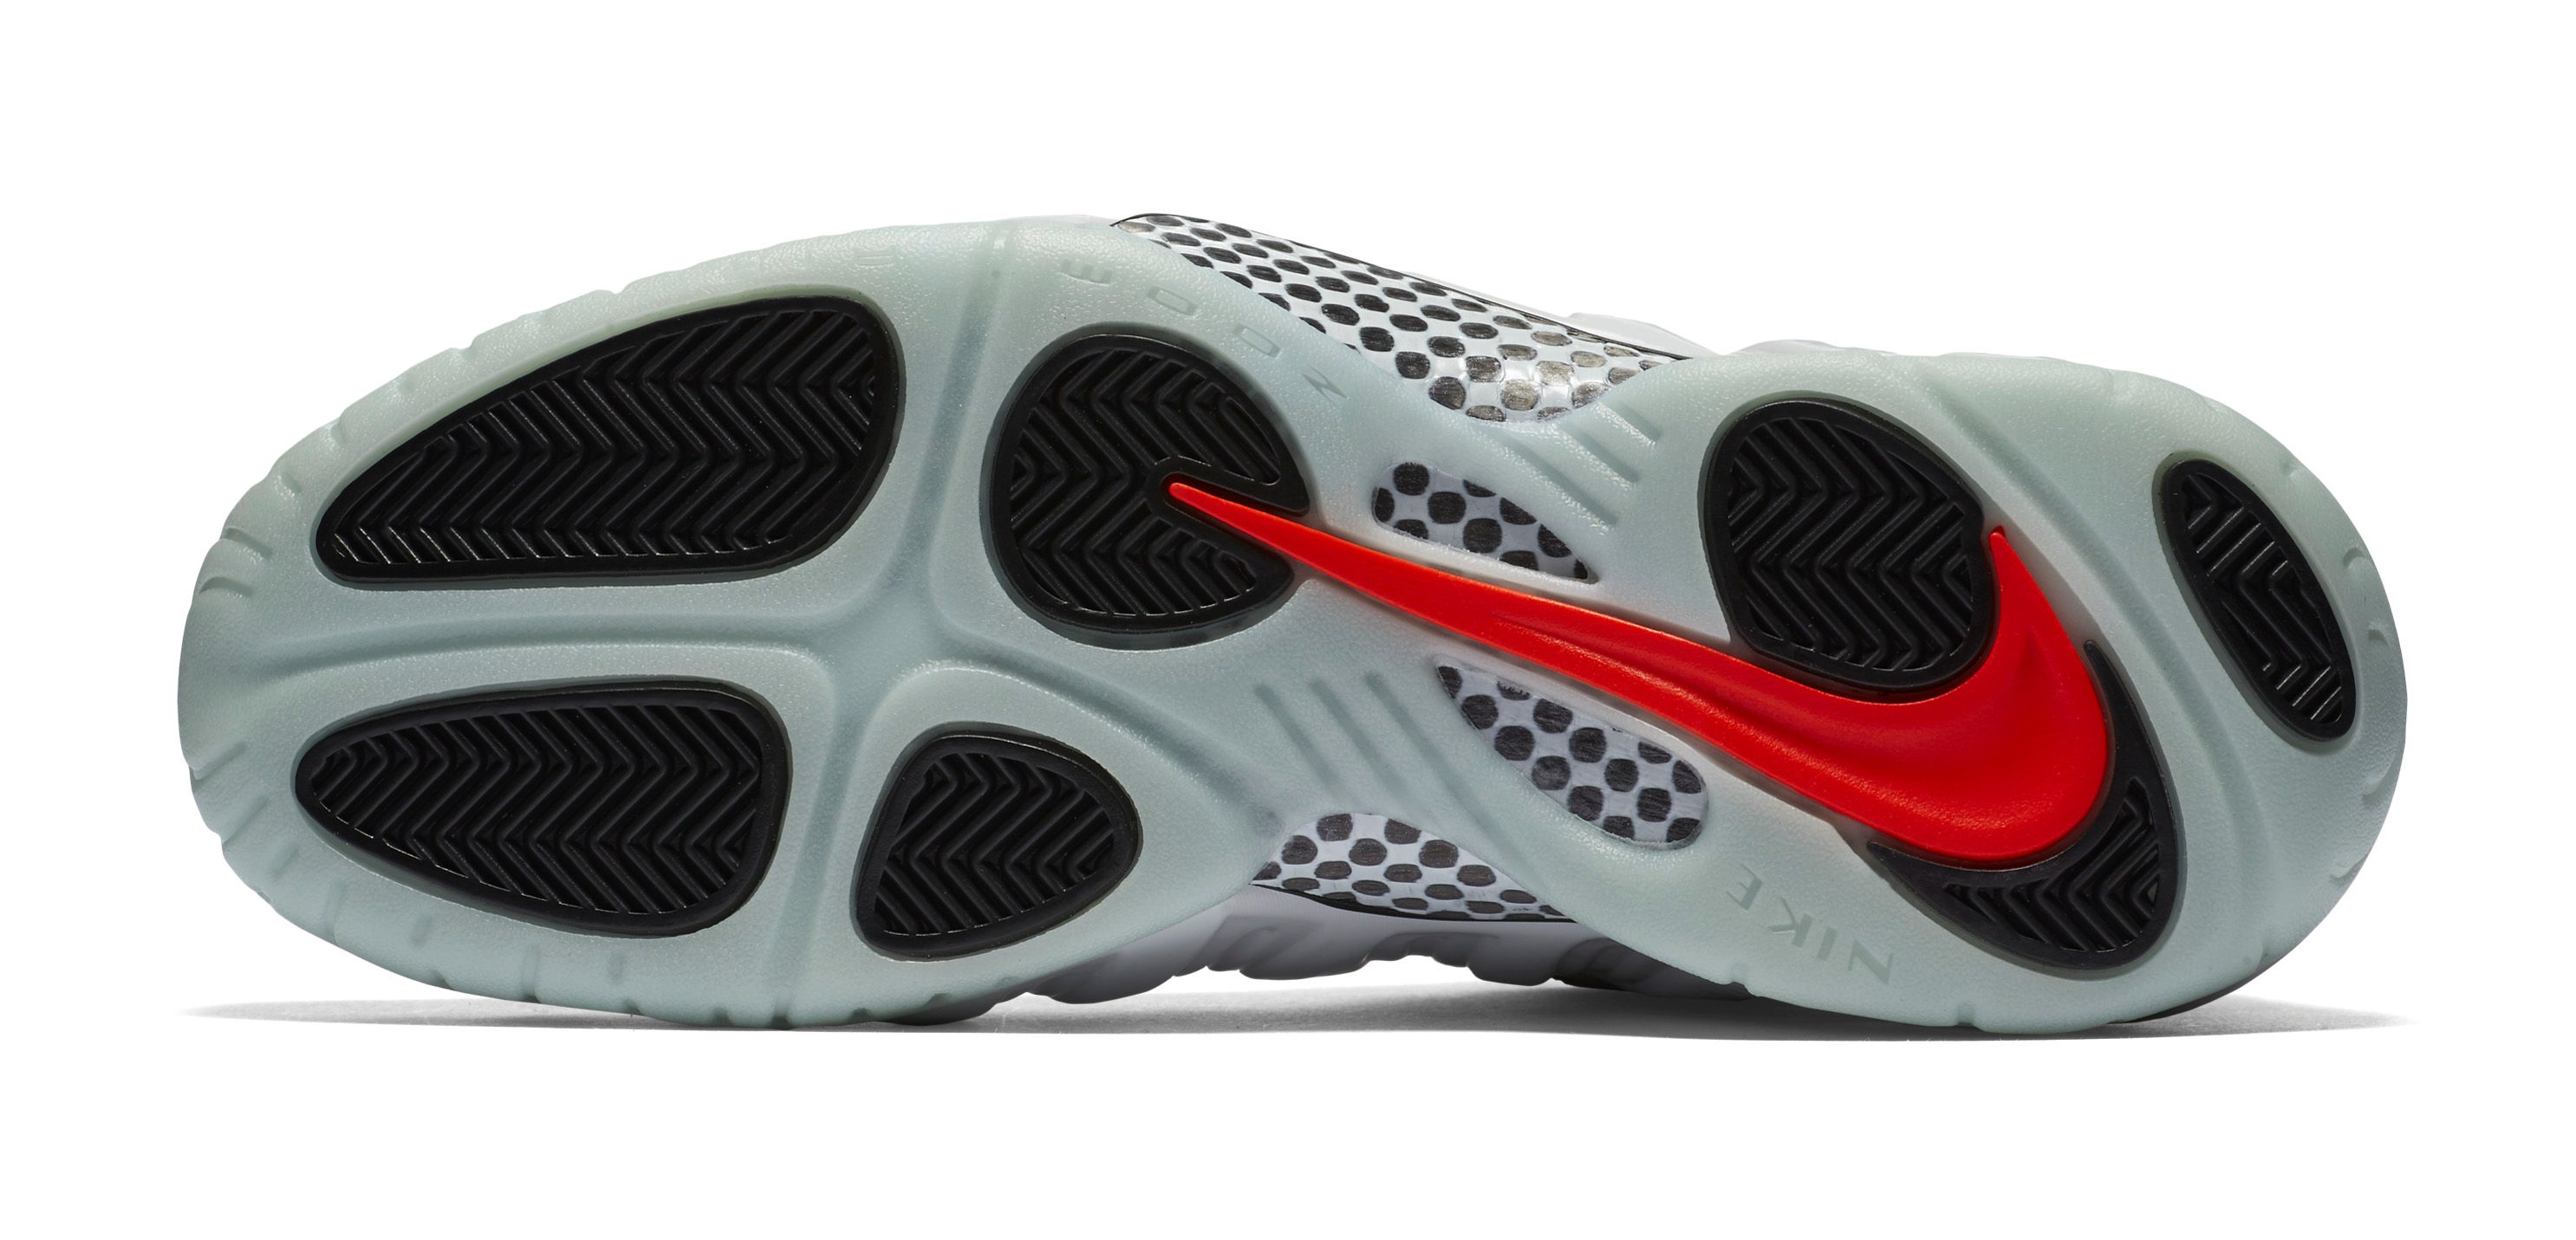 Nike Foamposite Pro Pure Platinum Yeezy outsole